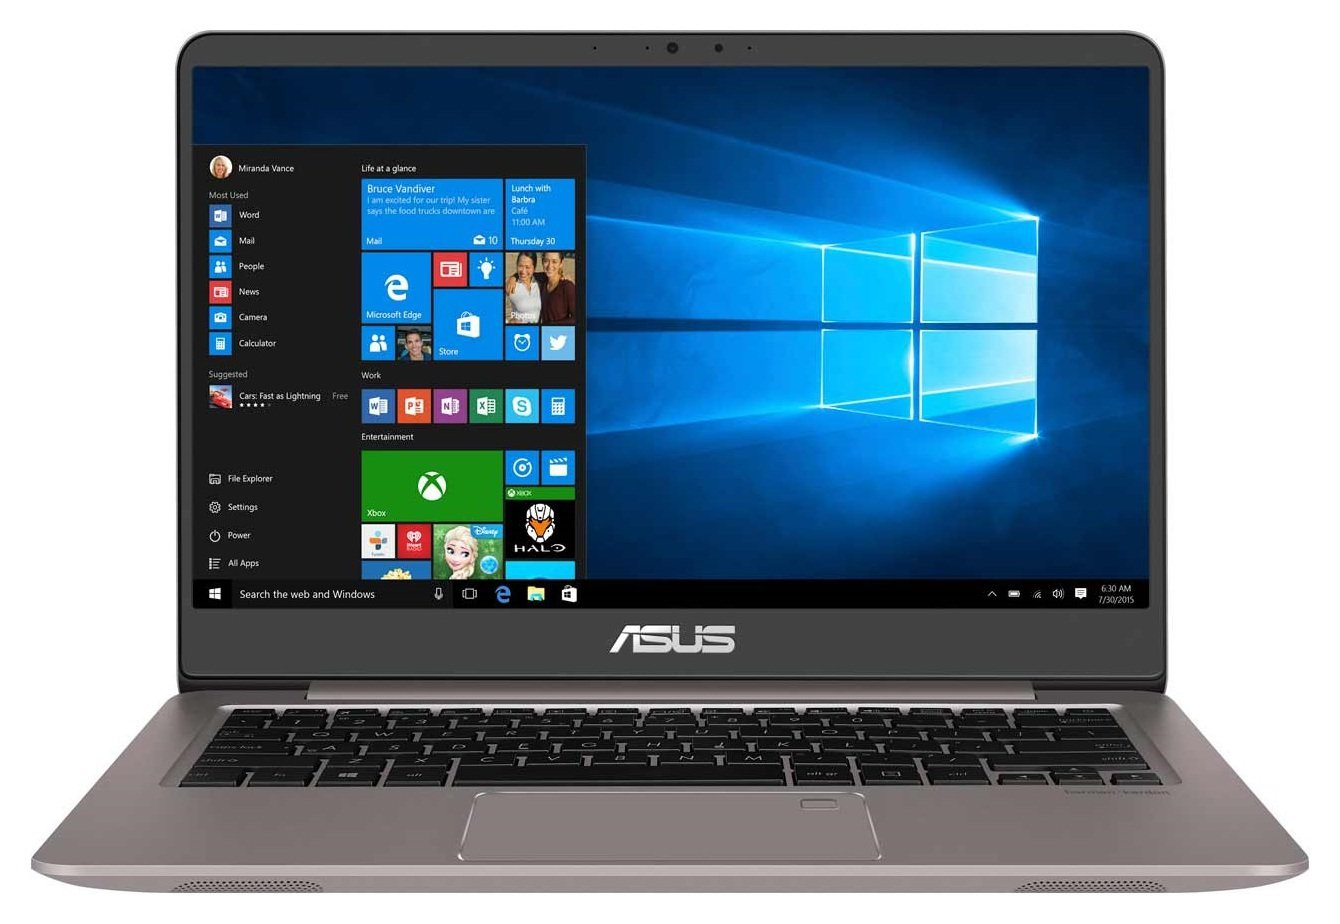 Asus Asus ZenBook UX410 14 Inch i5 8GB 256GB Laptop - Silver